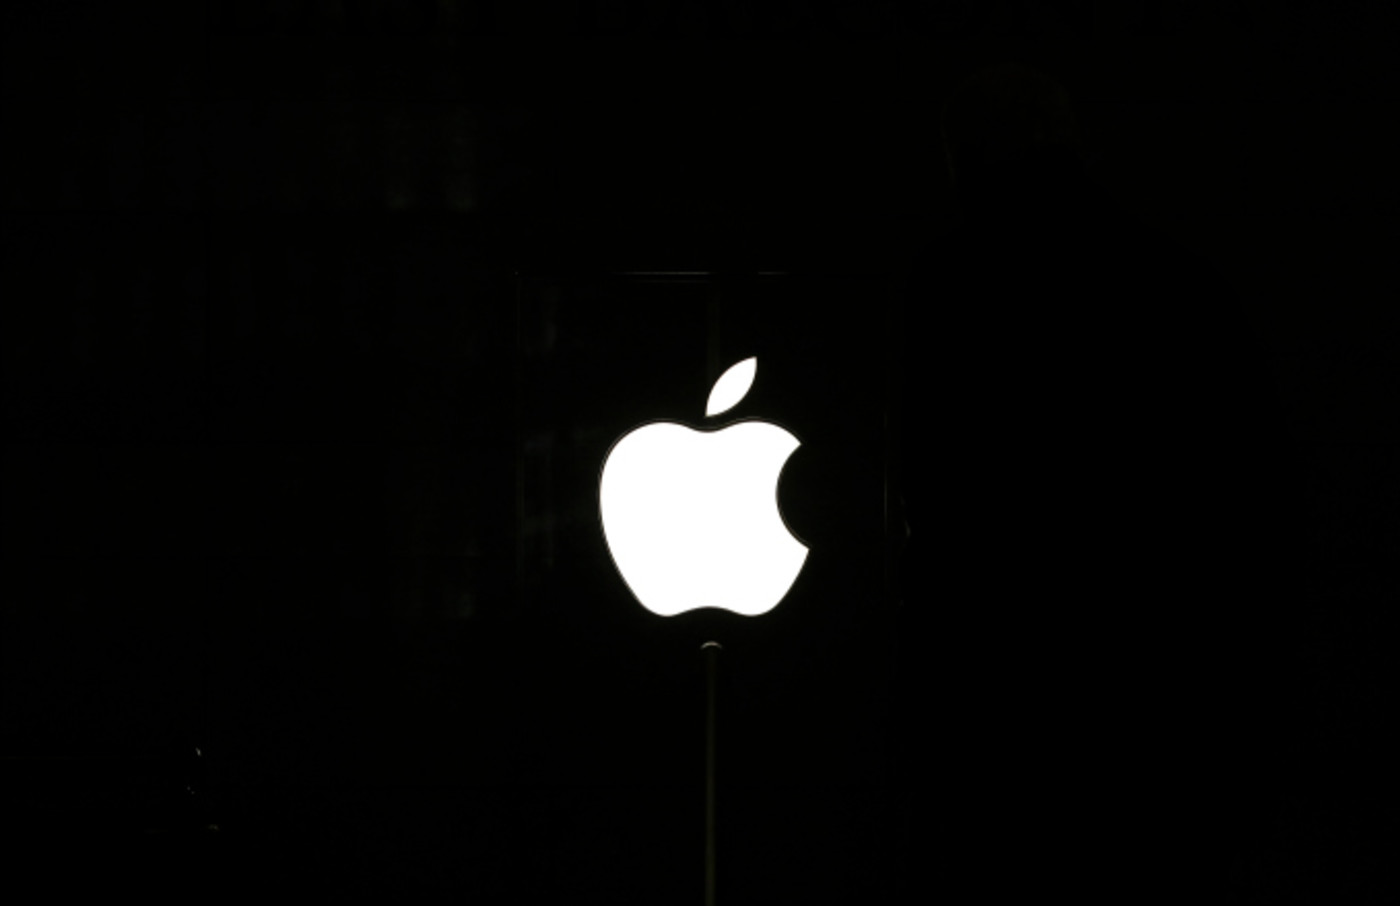 An Apple logo is displayed in an Apple retail store in Grand Central Terminal